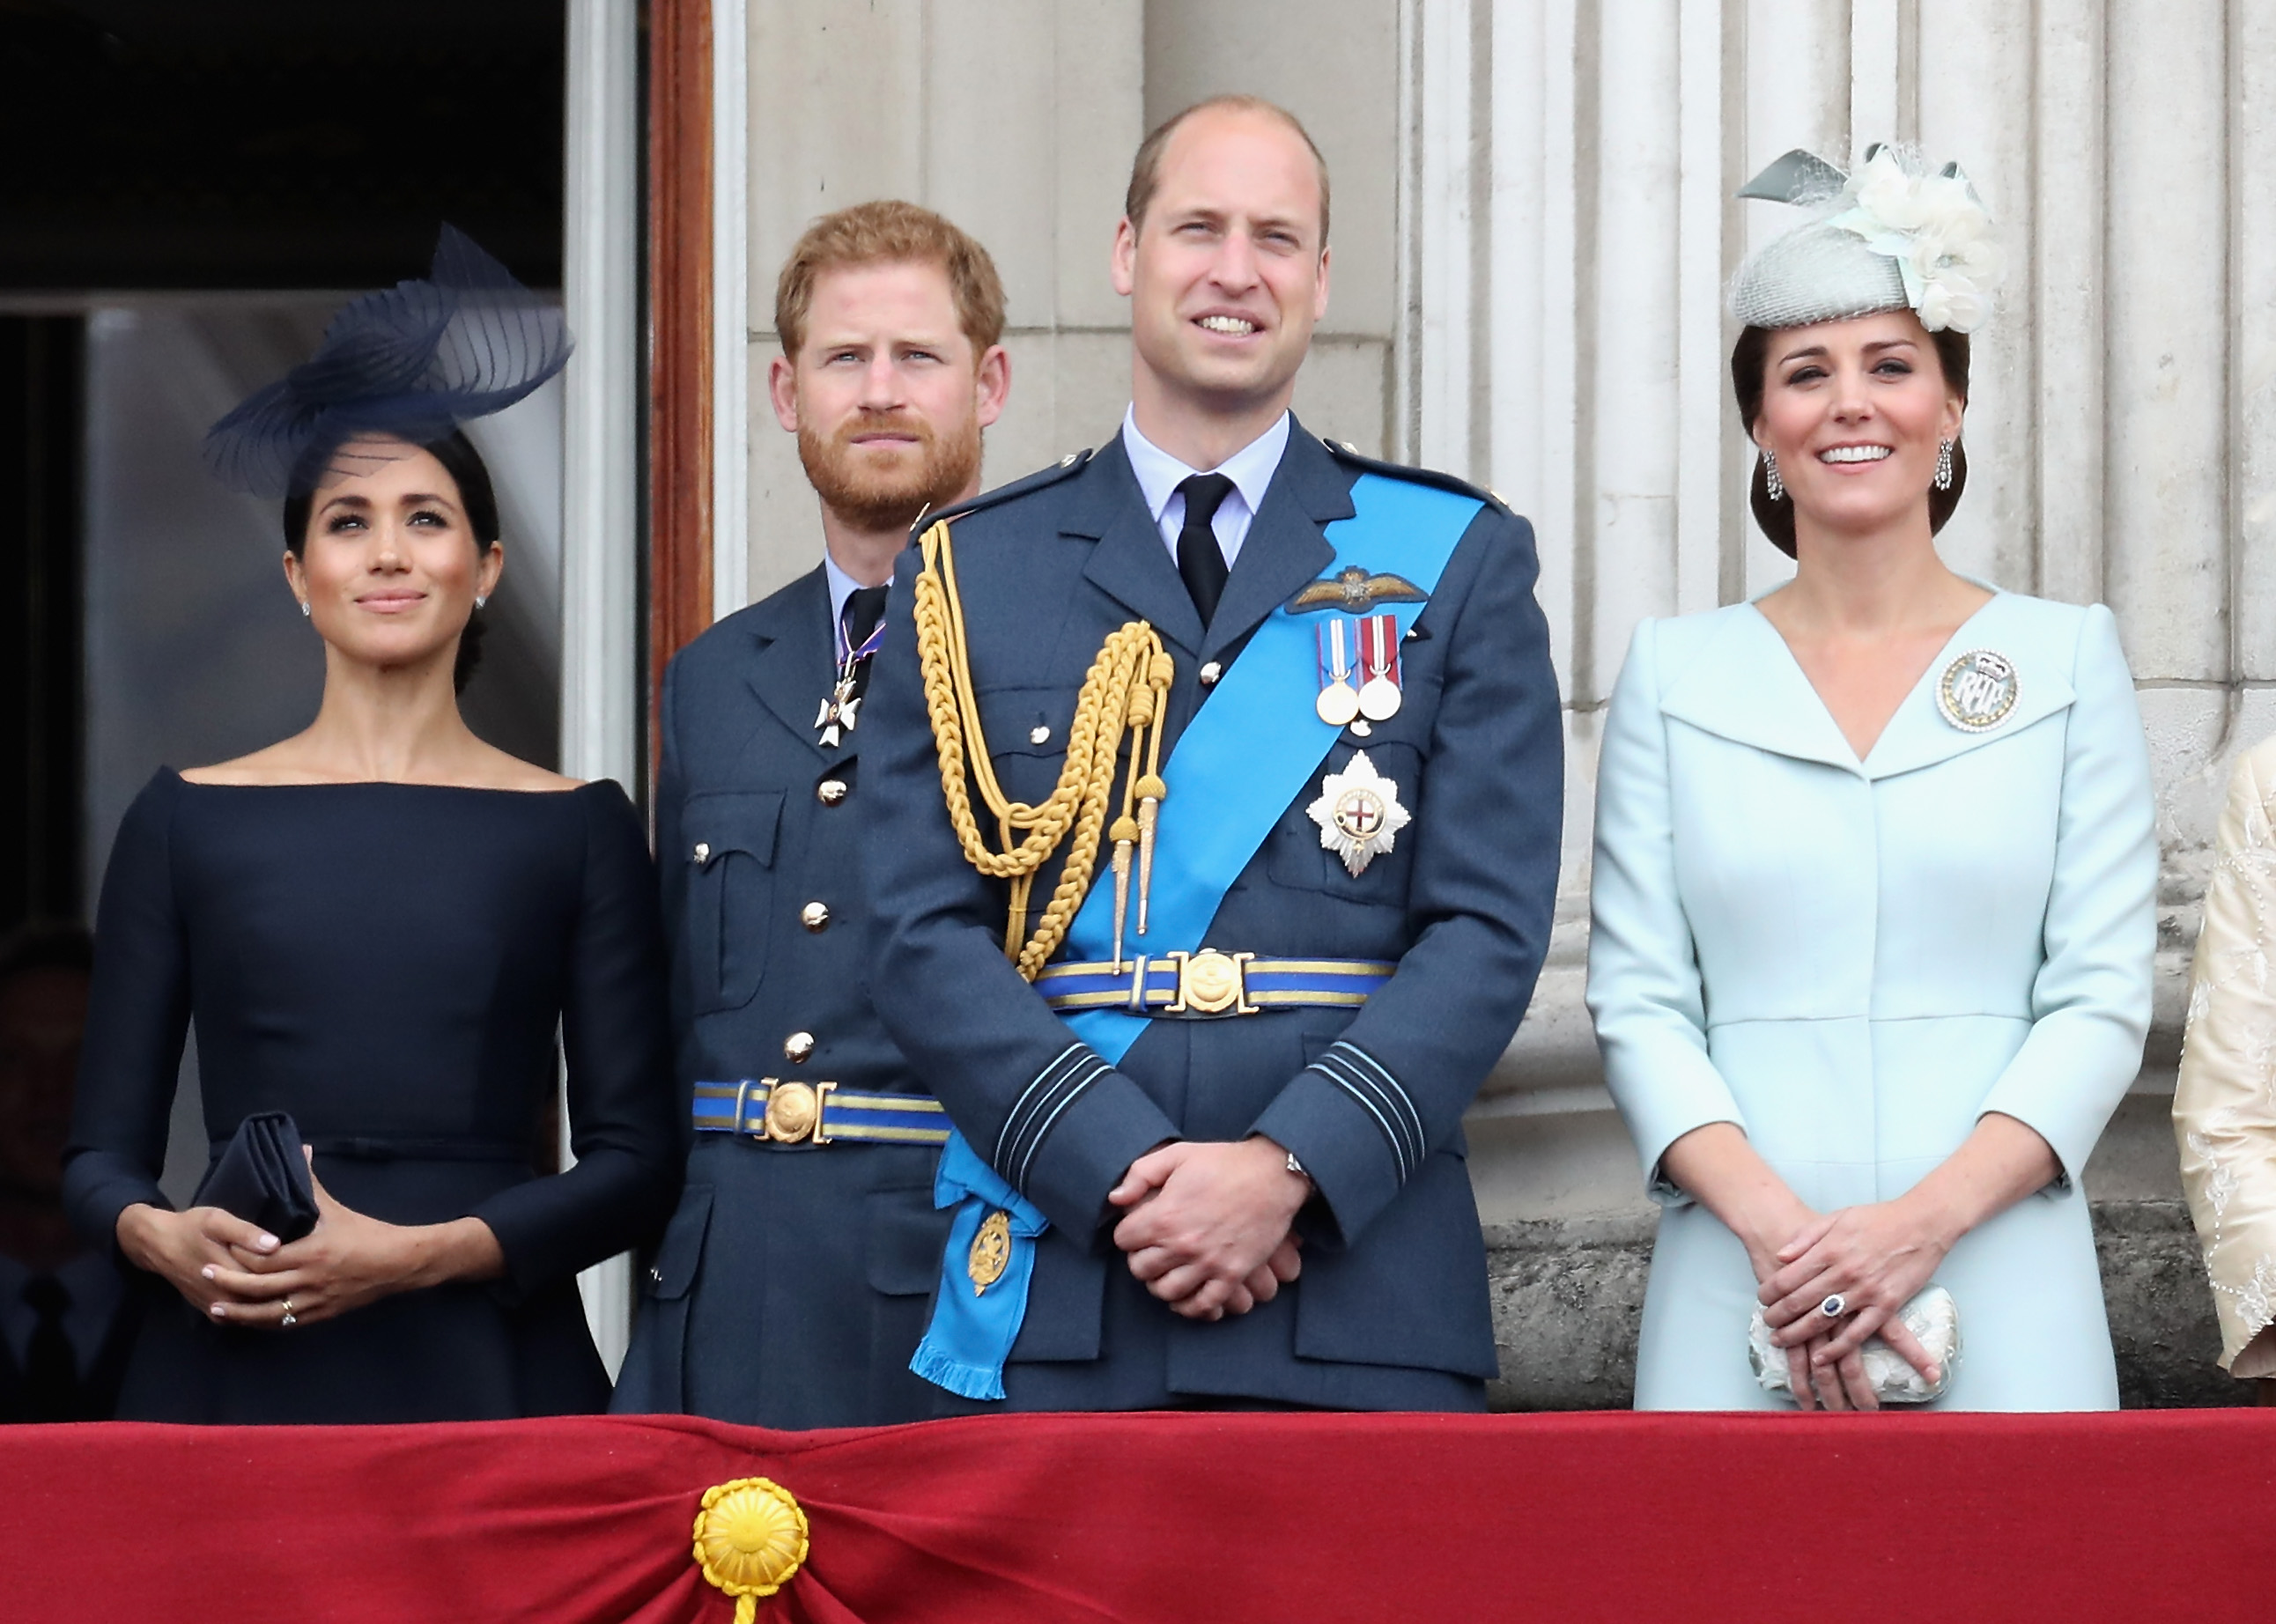 (L-R) Meghan, Prince Harry, Prince William, and Kate Middleton at the RAF flypast on the balcony of Buckingham Palace on July 10, 2018, in London (Getty Images)